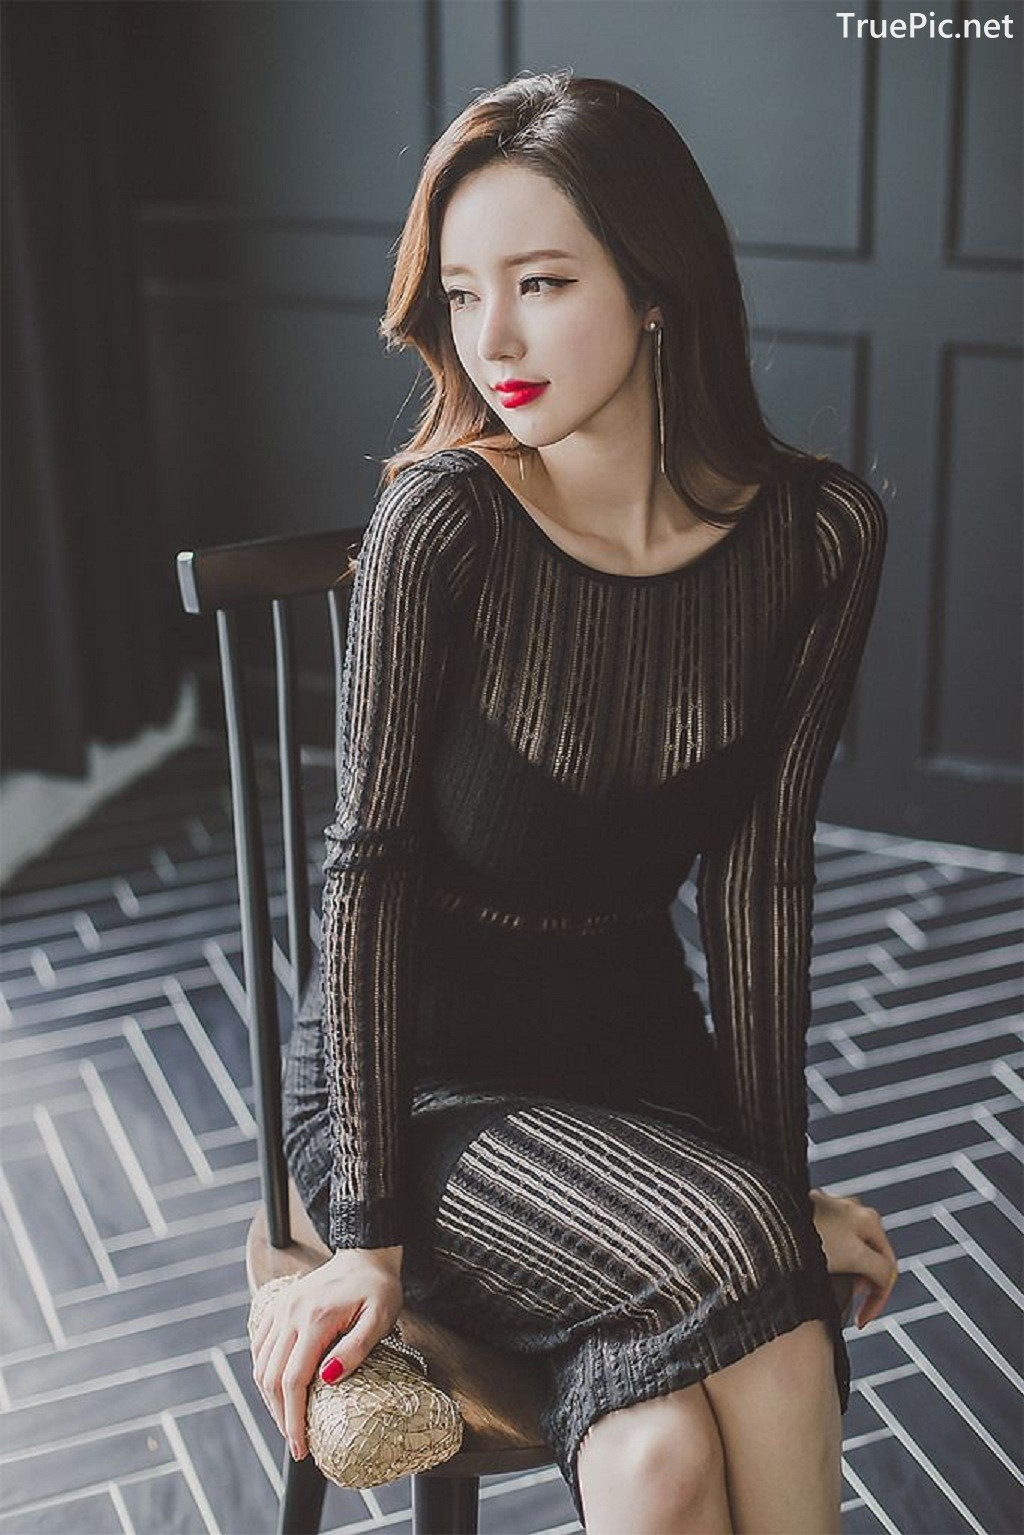 Image-Lee-Yeon-Jeong-Indoor-Photoshoot-Collection-Korean-fashion-model-Part-14-TruePic.net- Picture-1